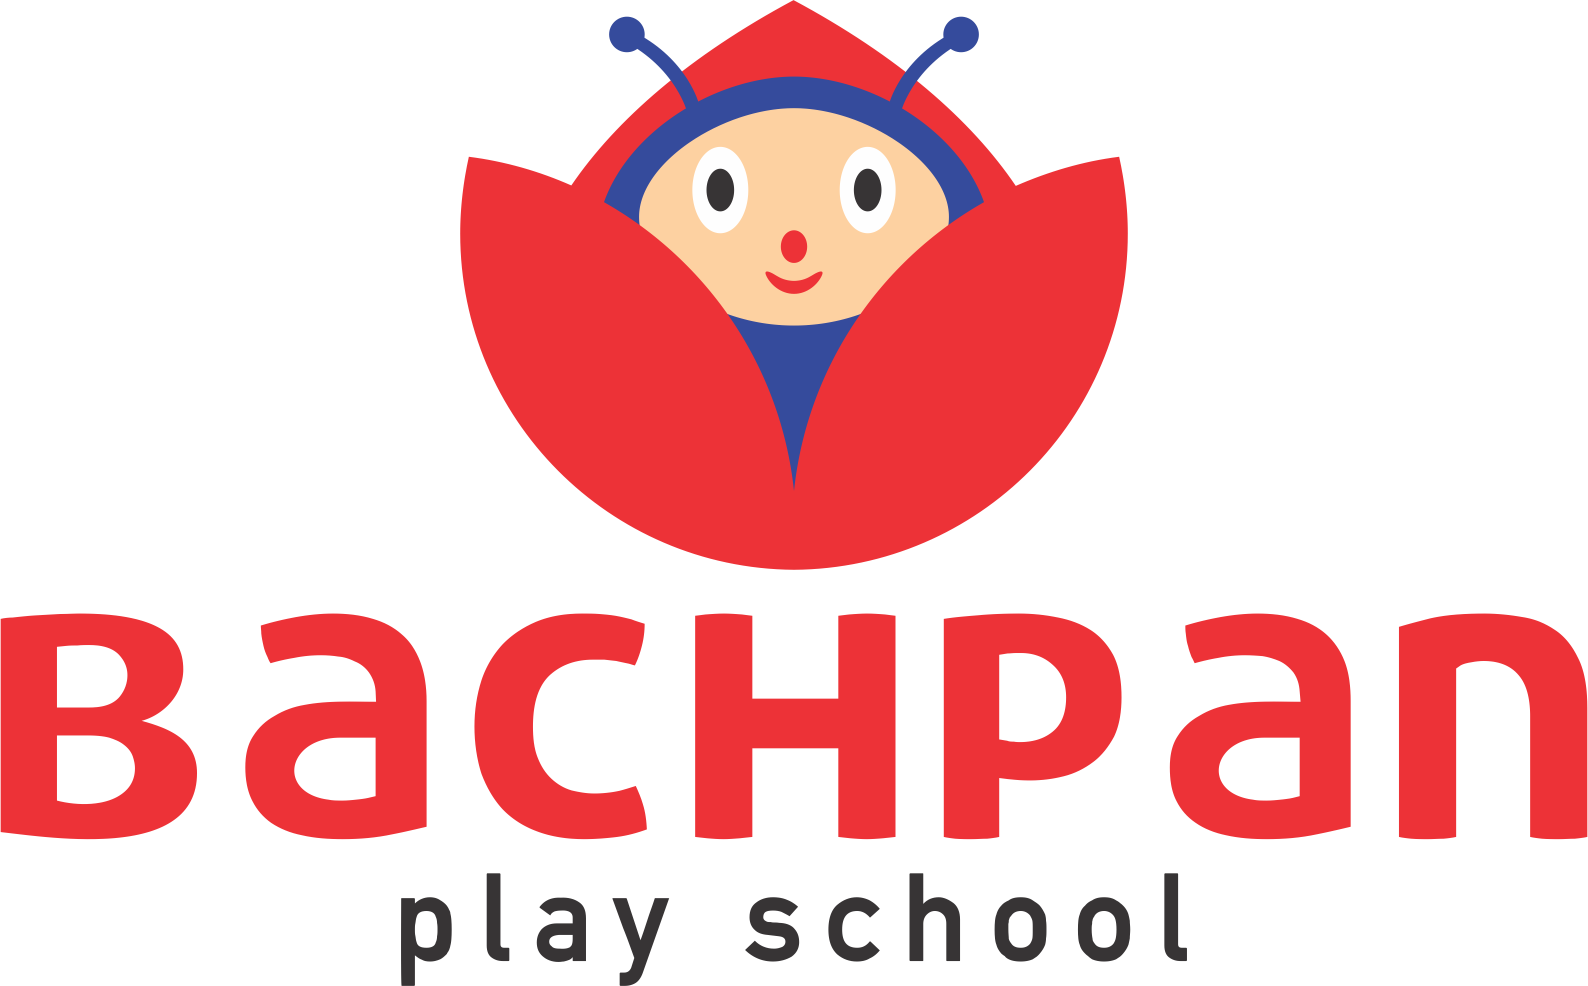 Bachpan… a Play School